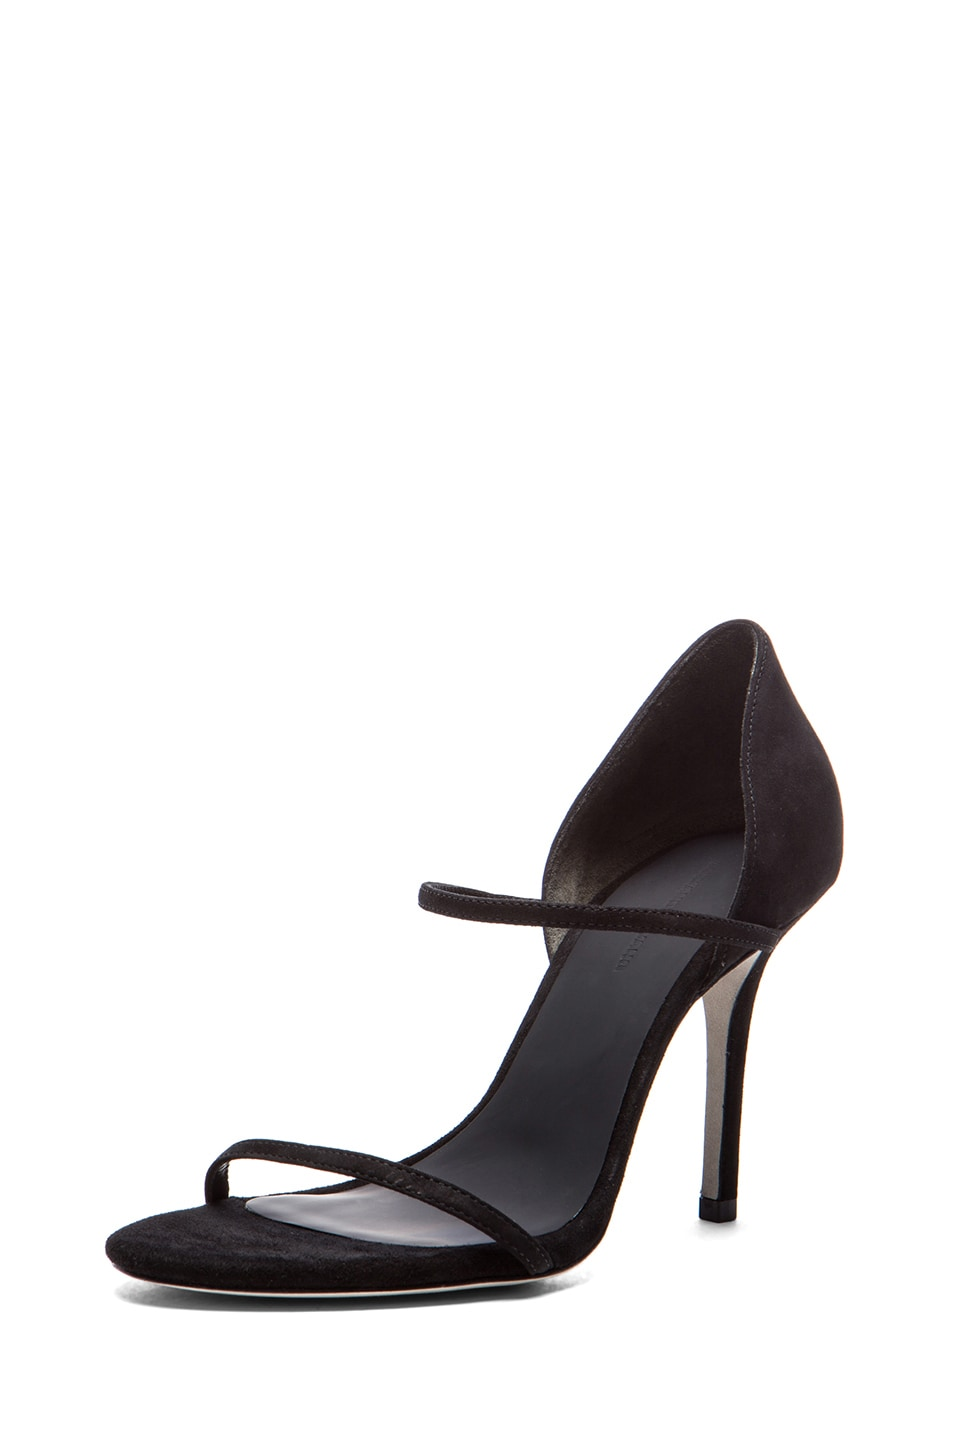 Image 2 of Alexander Wang Stasya Suede Heels in Black